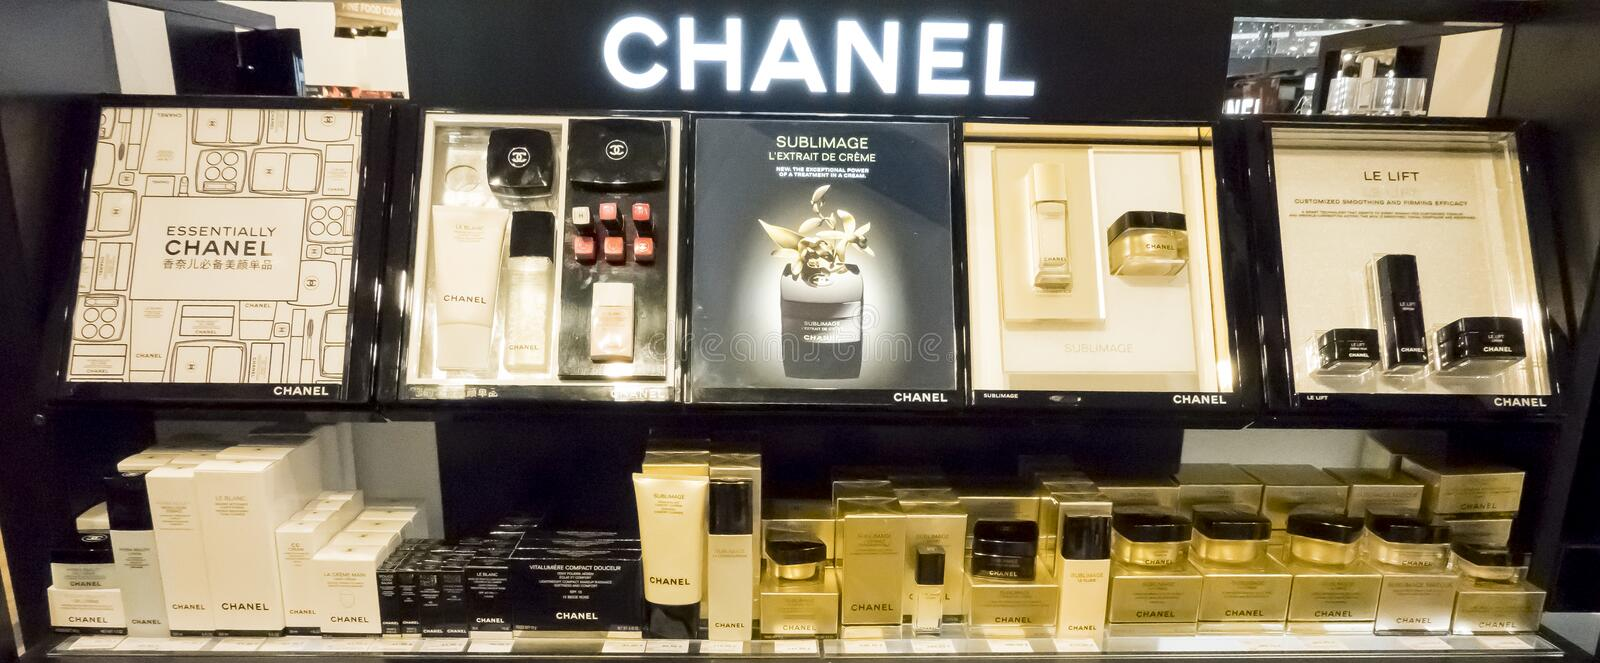 Chanel french luxury brand perfume in duty free store shelf stock images